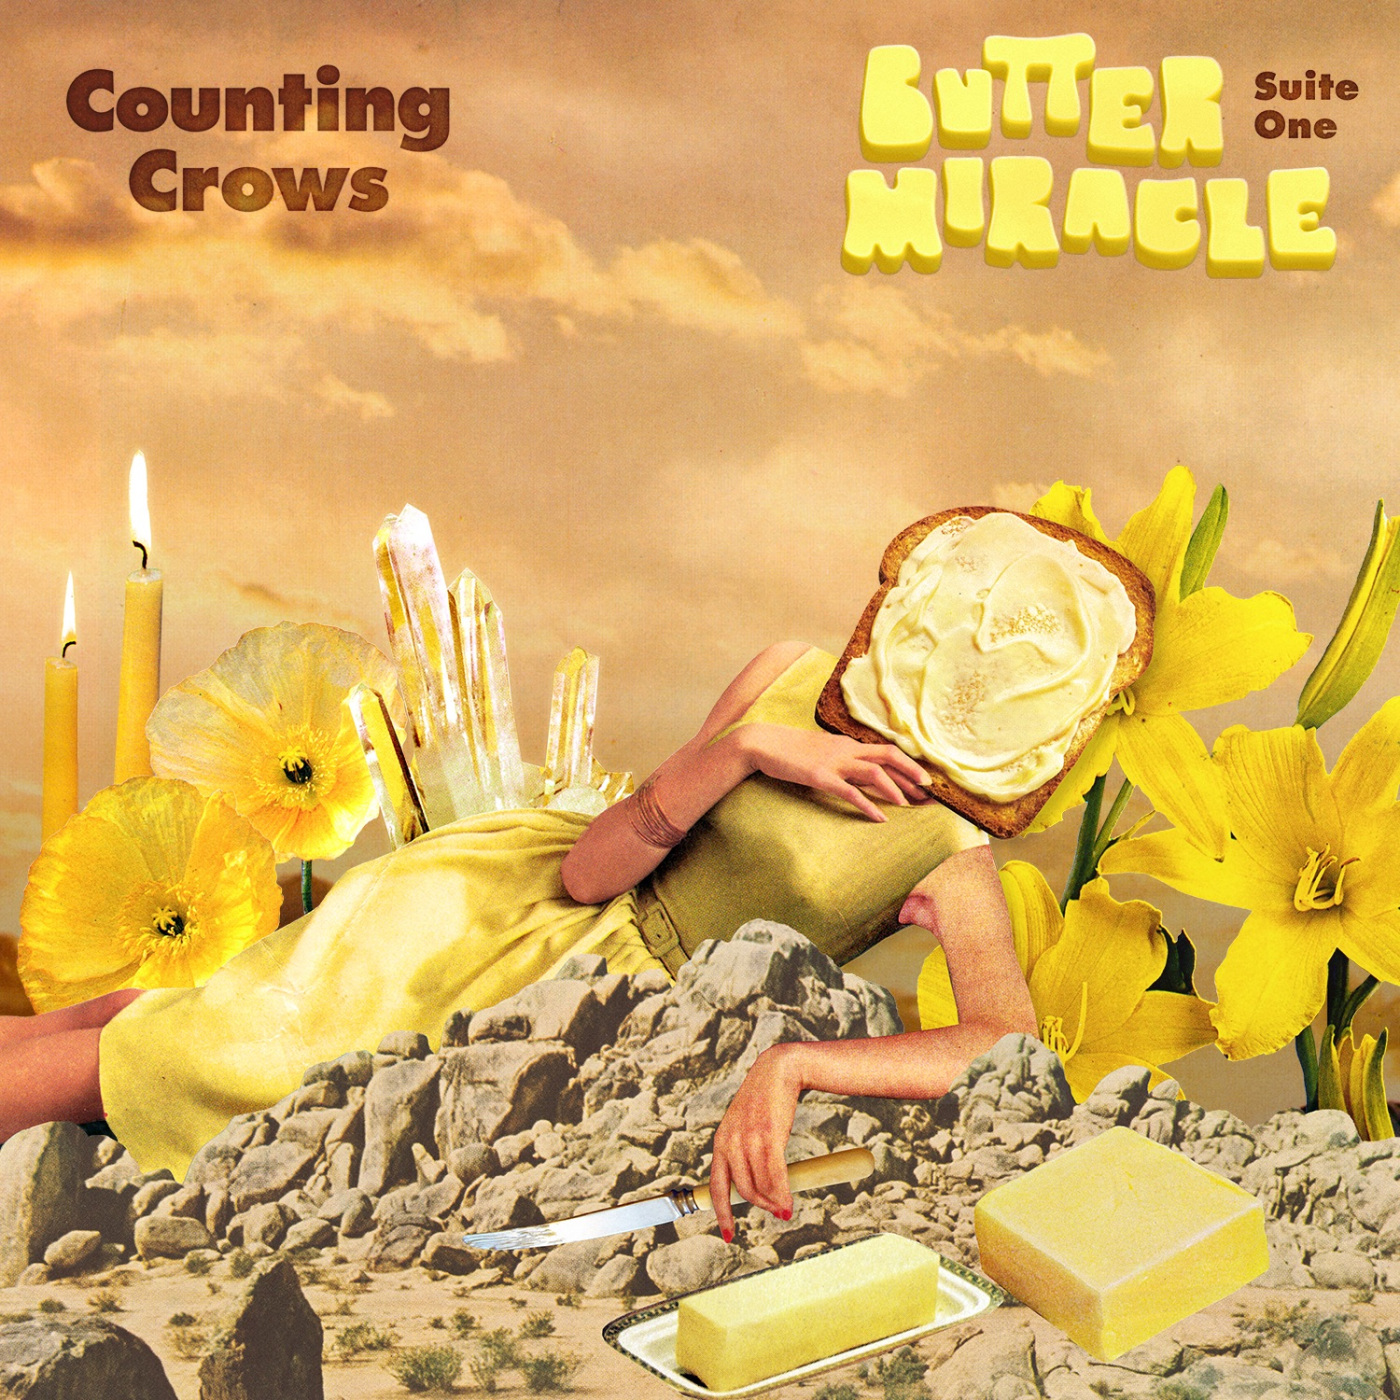 Counting Crows – Butter Miracle, Suite One